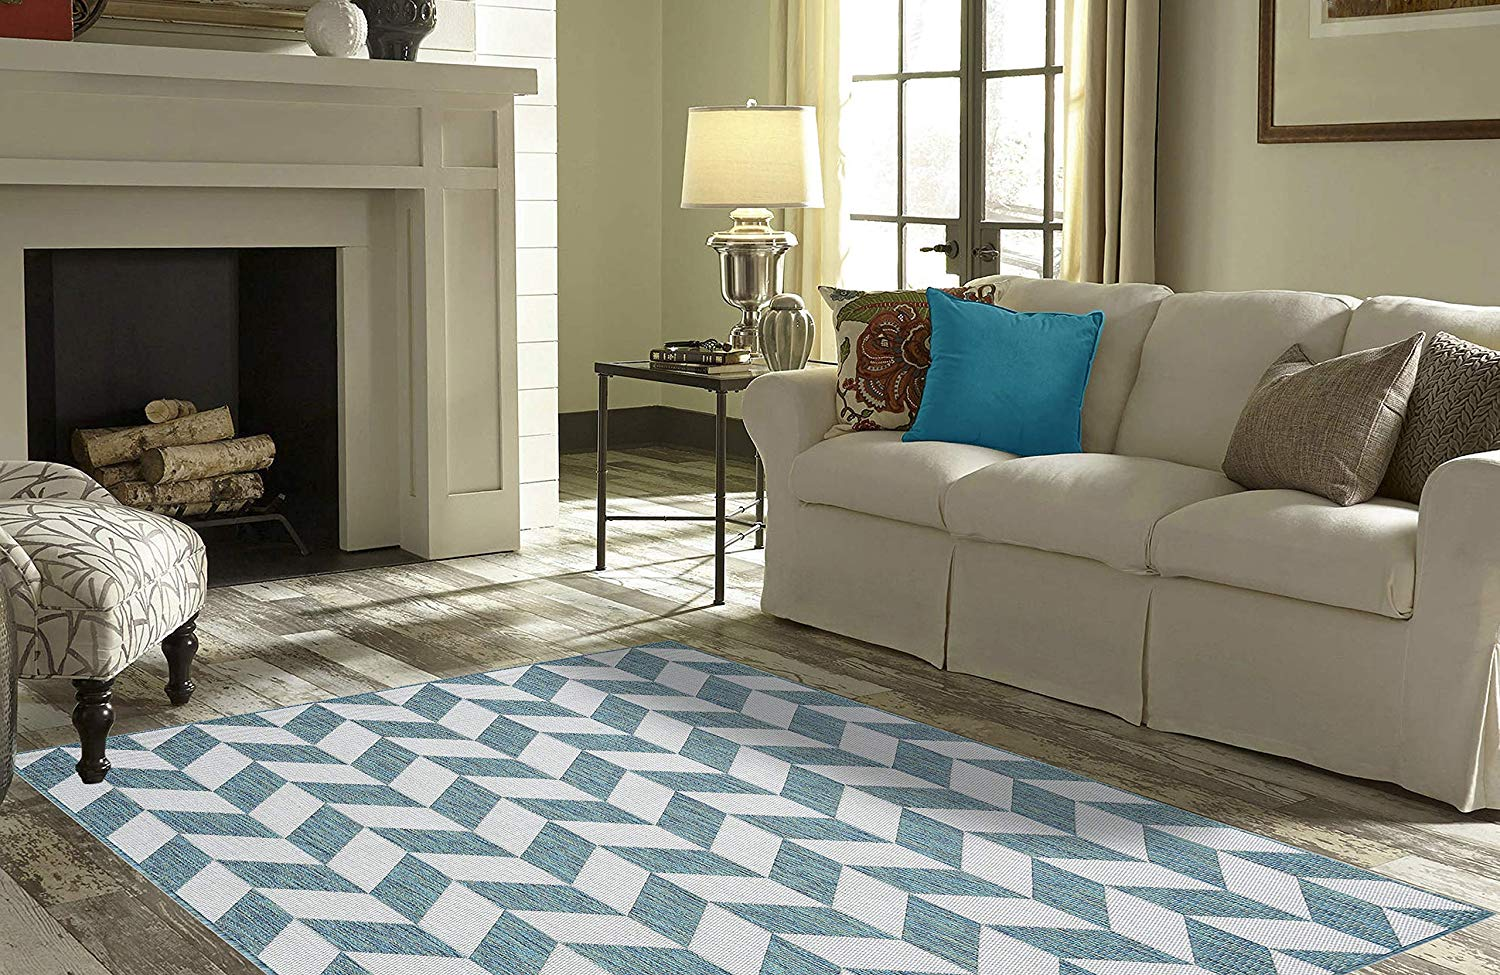 """Fireplace Rugs Amazon Inspirational Priyate Florida Collection All Weather Indoor Outdoor Geometric Triangle Rug for Living Room Bedroom and Dining Room 5 3"""" X 7 6"""" Ocean"""